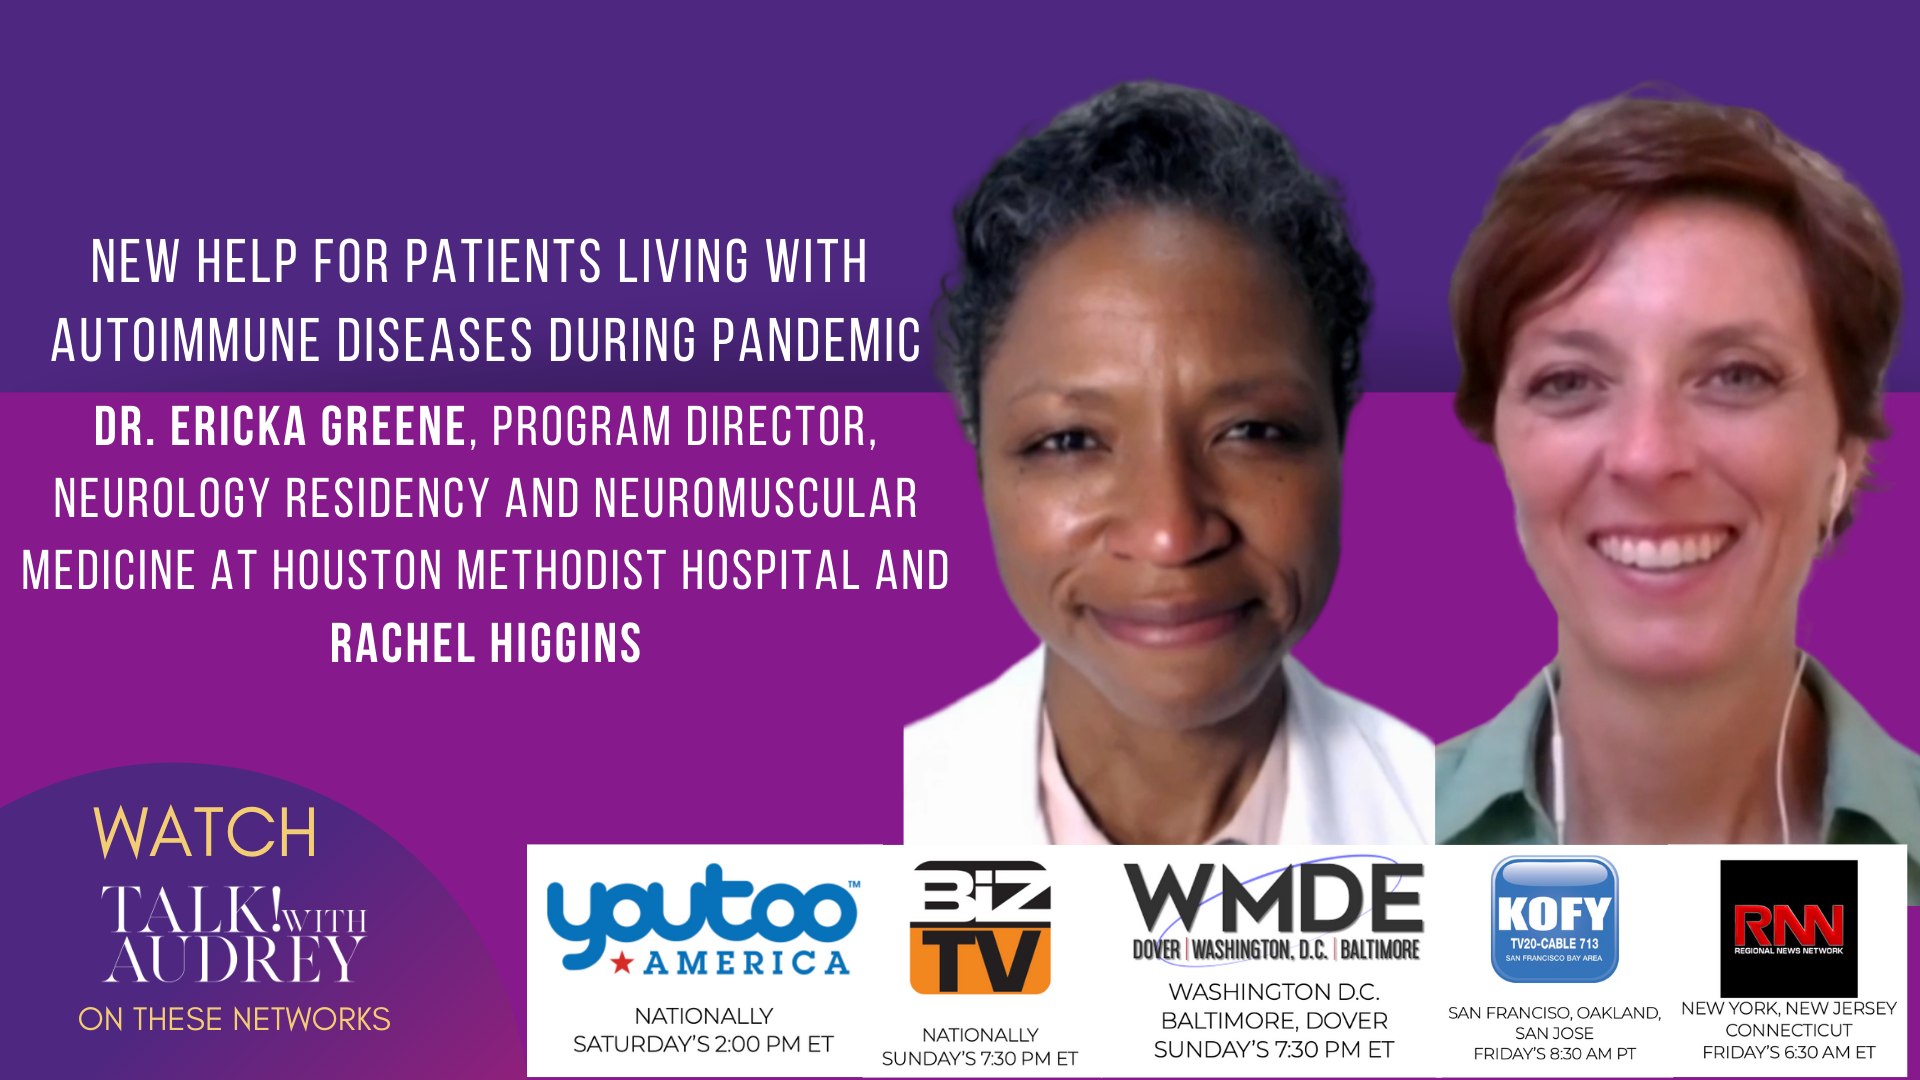 New Help For Patient Living with Autoimmune Diseases During Pandemic – TALK! with AUDREY TV